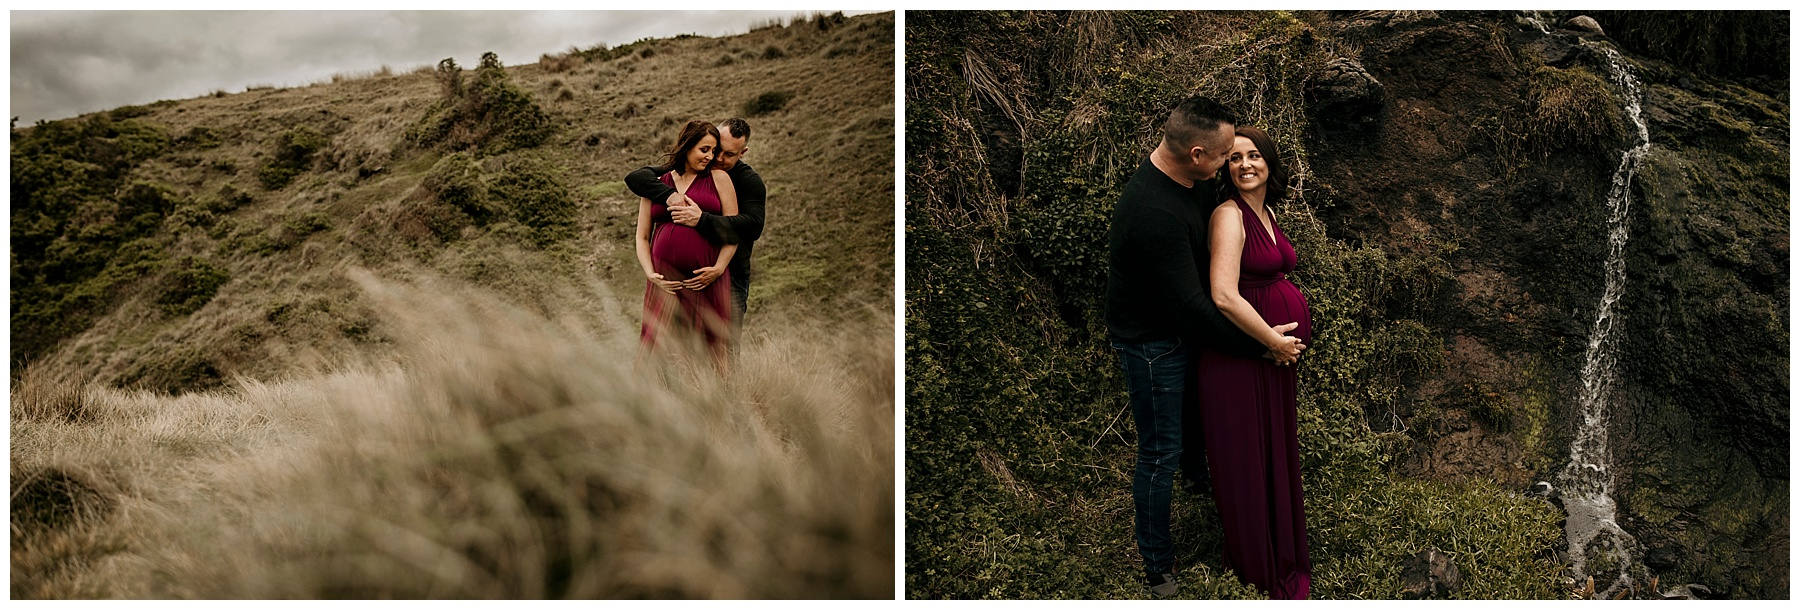 Mornington peninsula maternity, birth and newborn photography.jpg